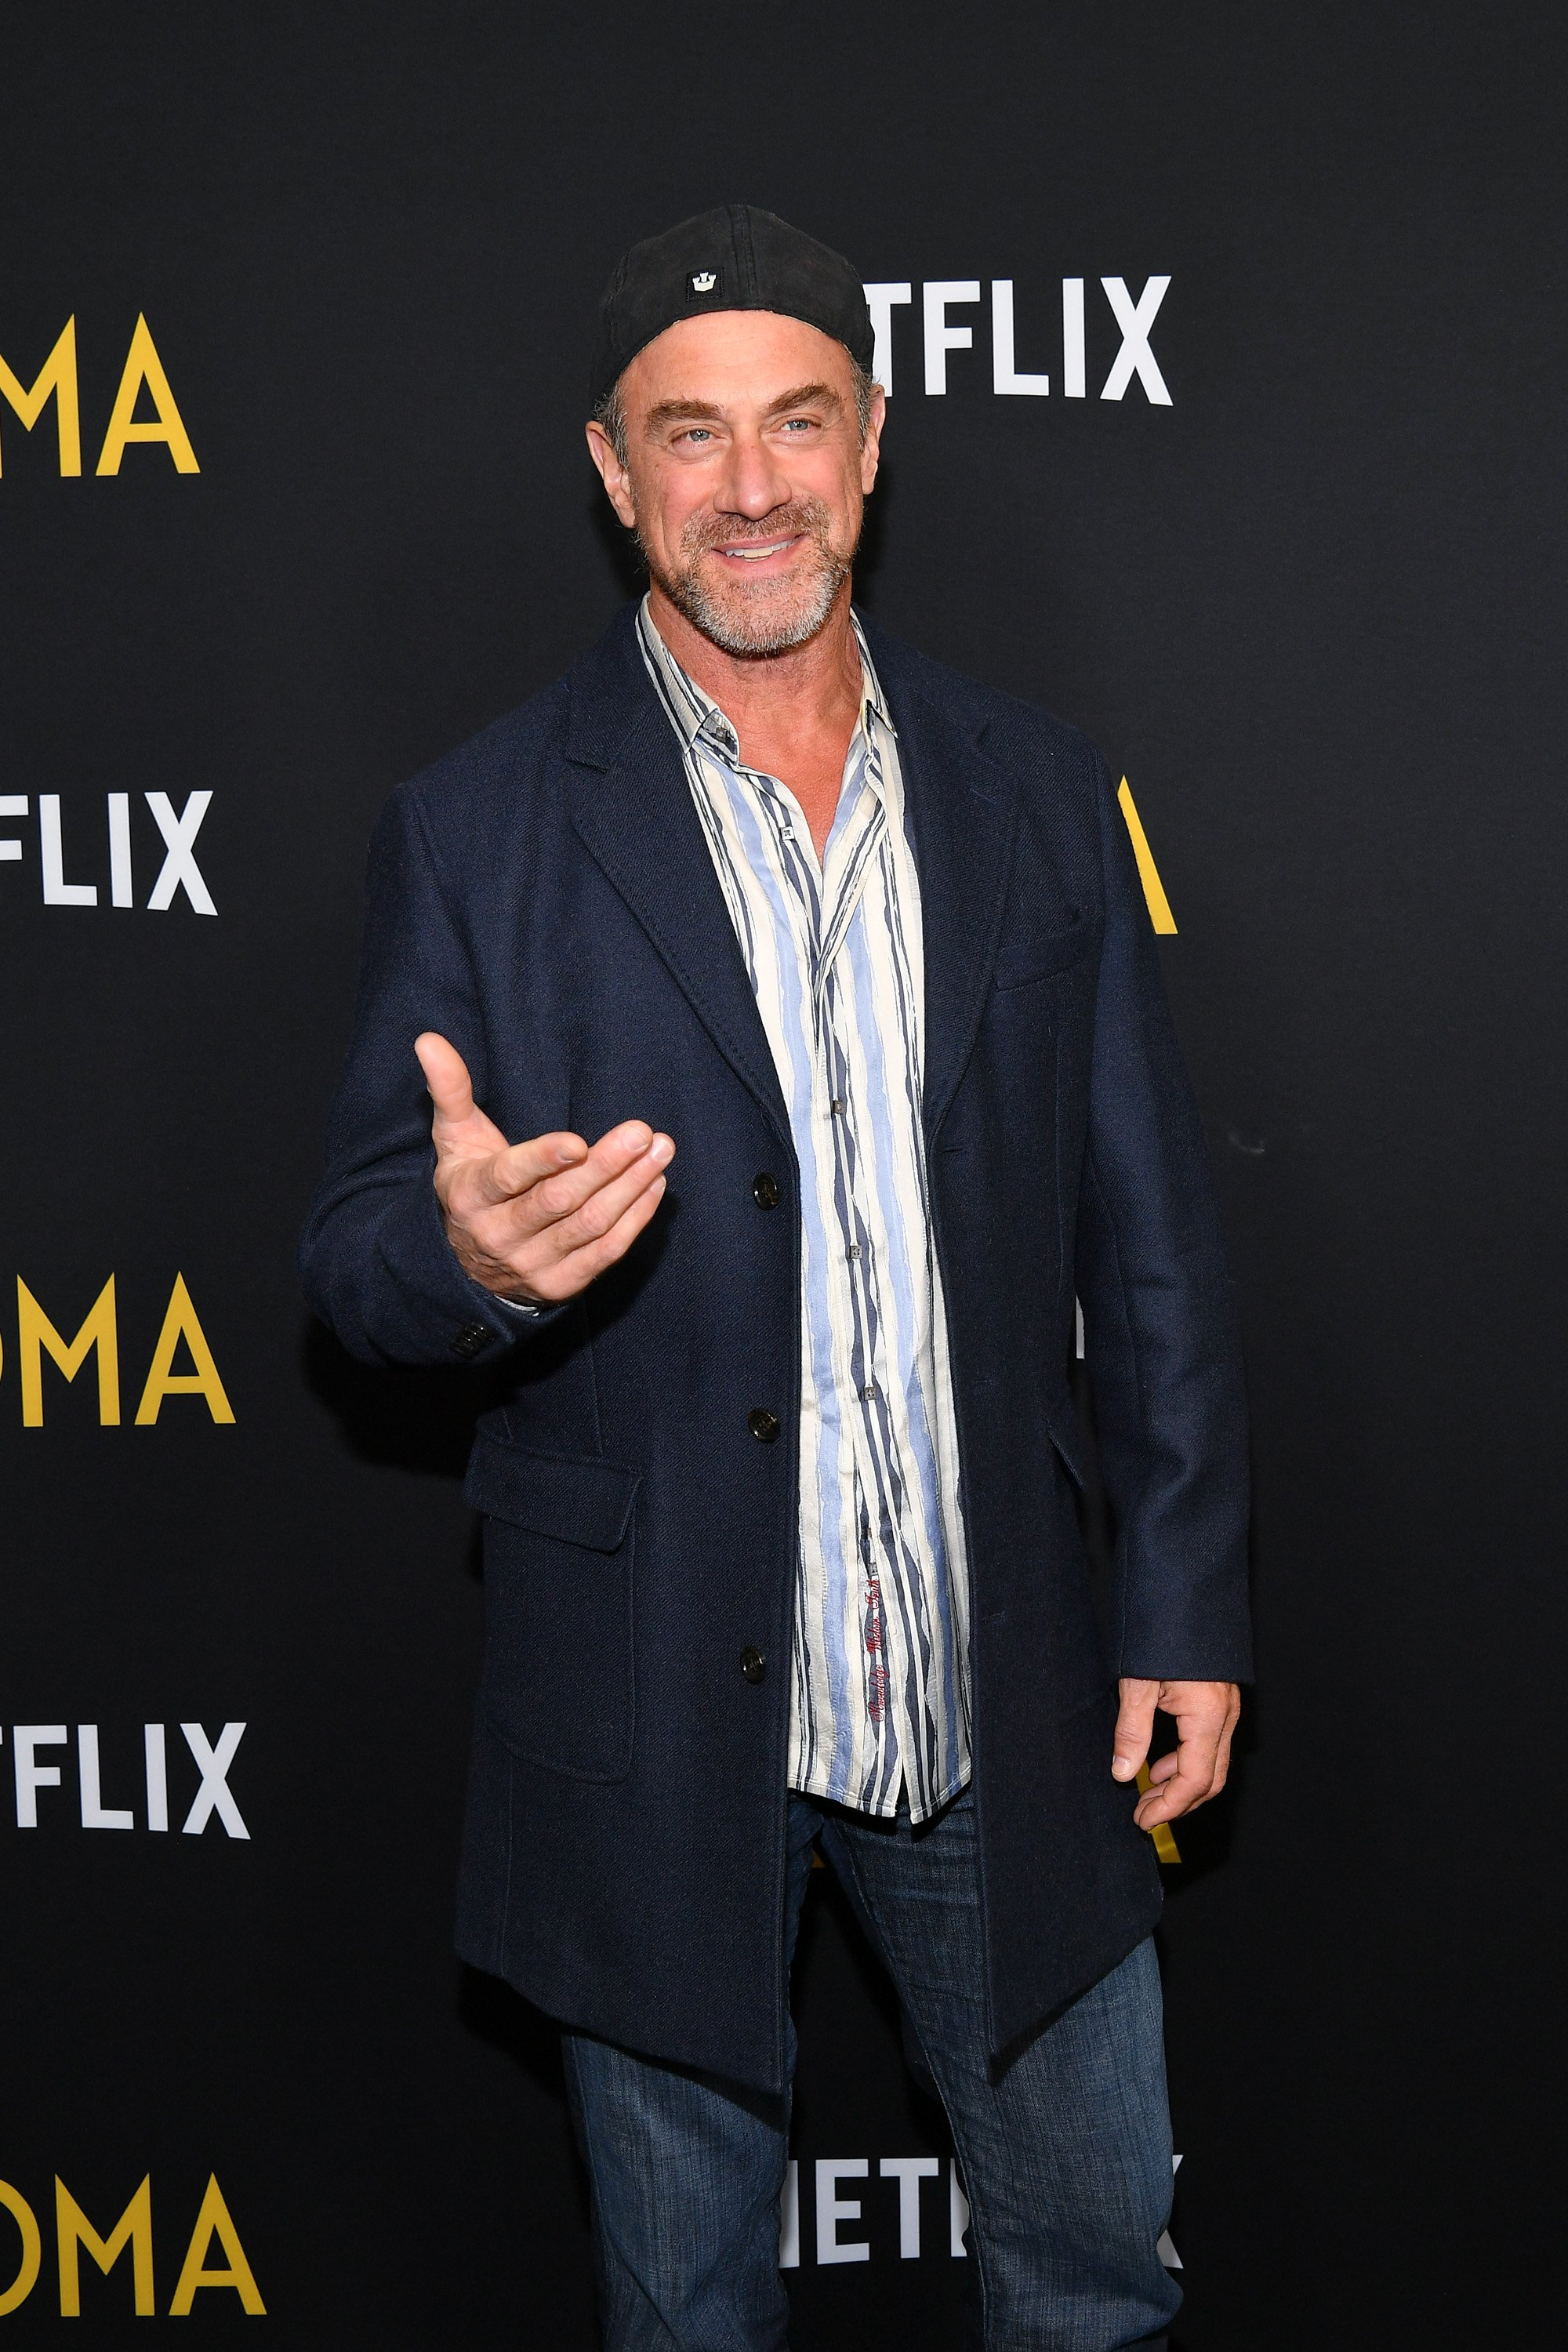 """Christopher Meloni attends the """"Roma"""" screening in New York City on November 27, 2018 